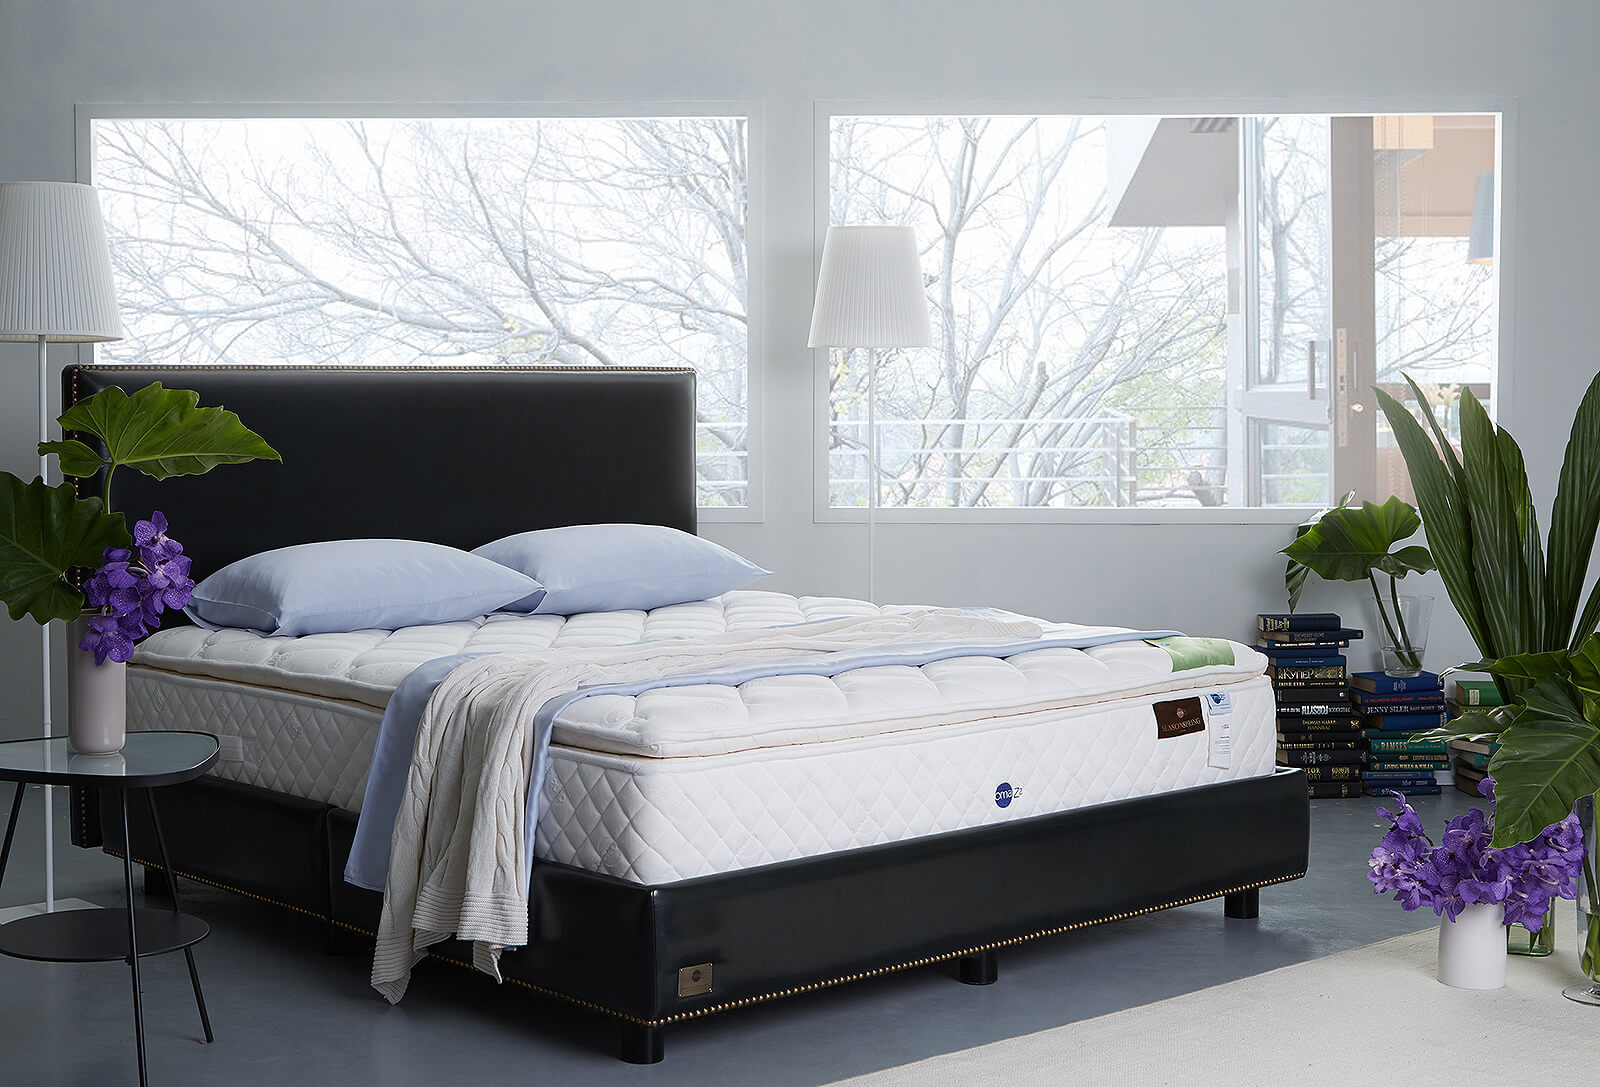 omazz-mattress-grand-felicia-o-1